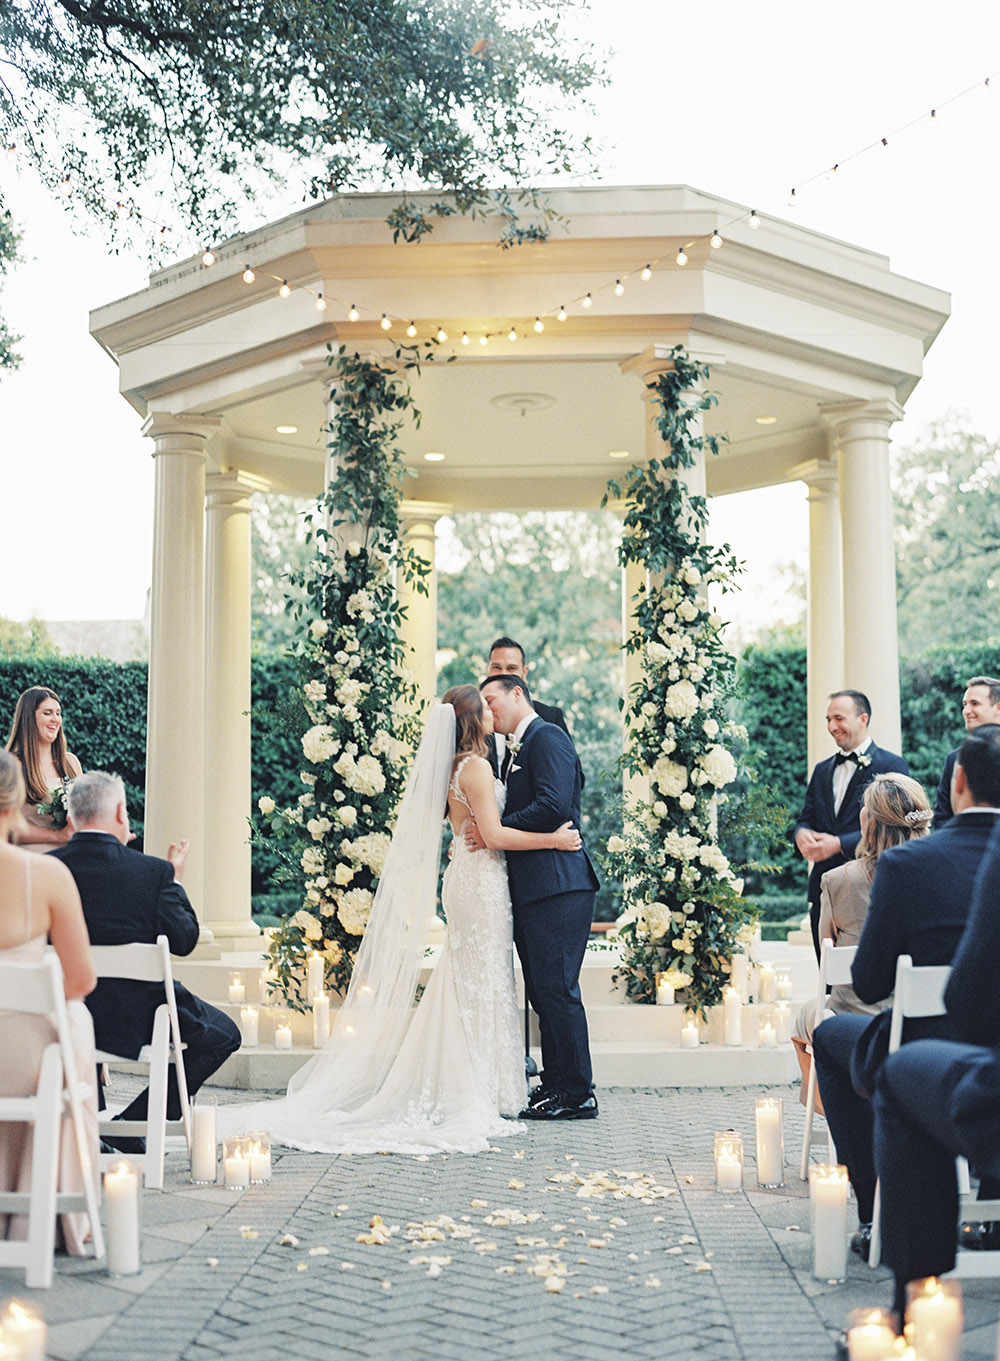 Wedding ceremony at The Elms Mansion in New Orleans by Peony Photography